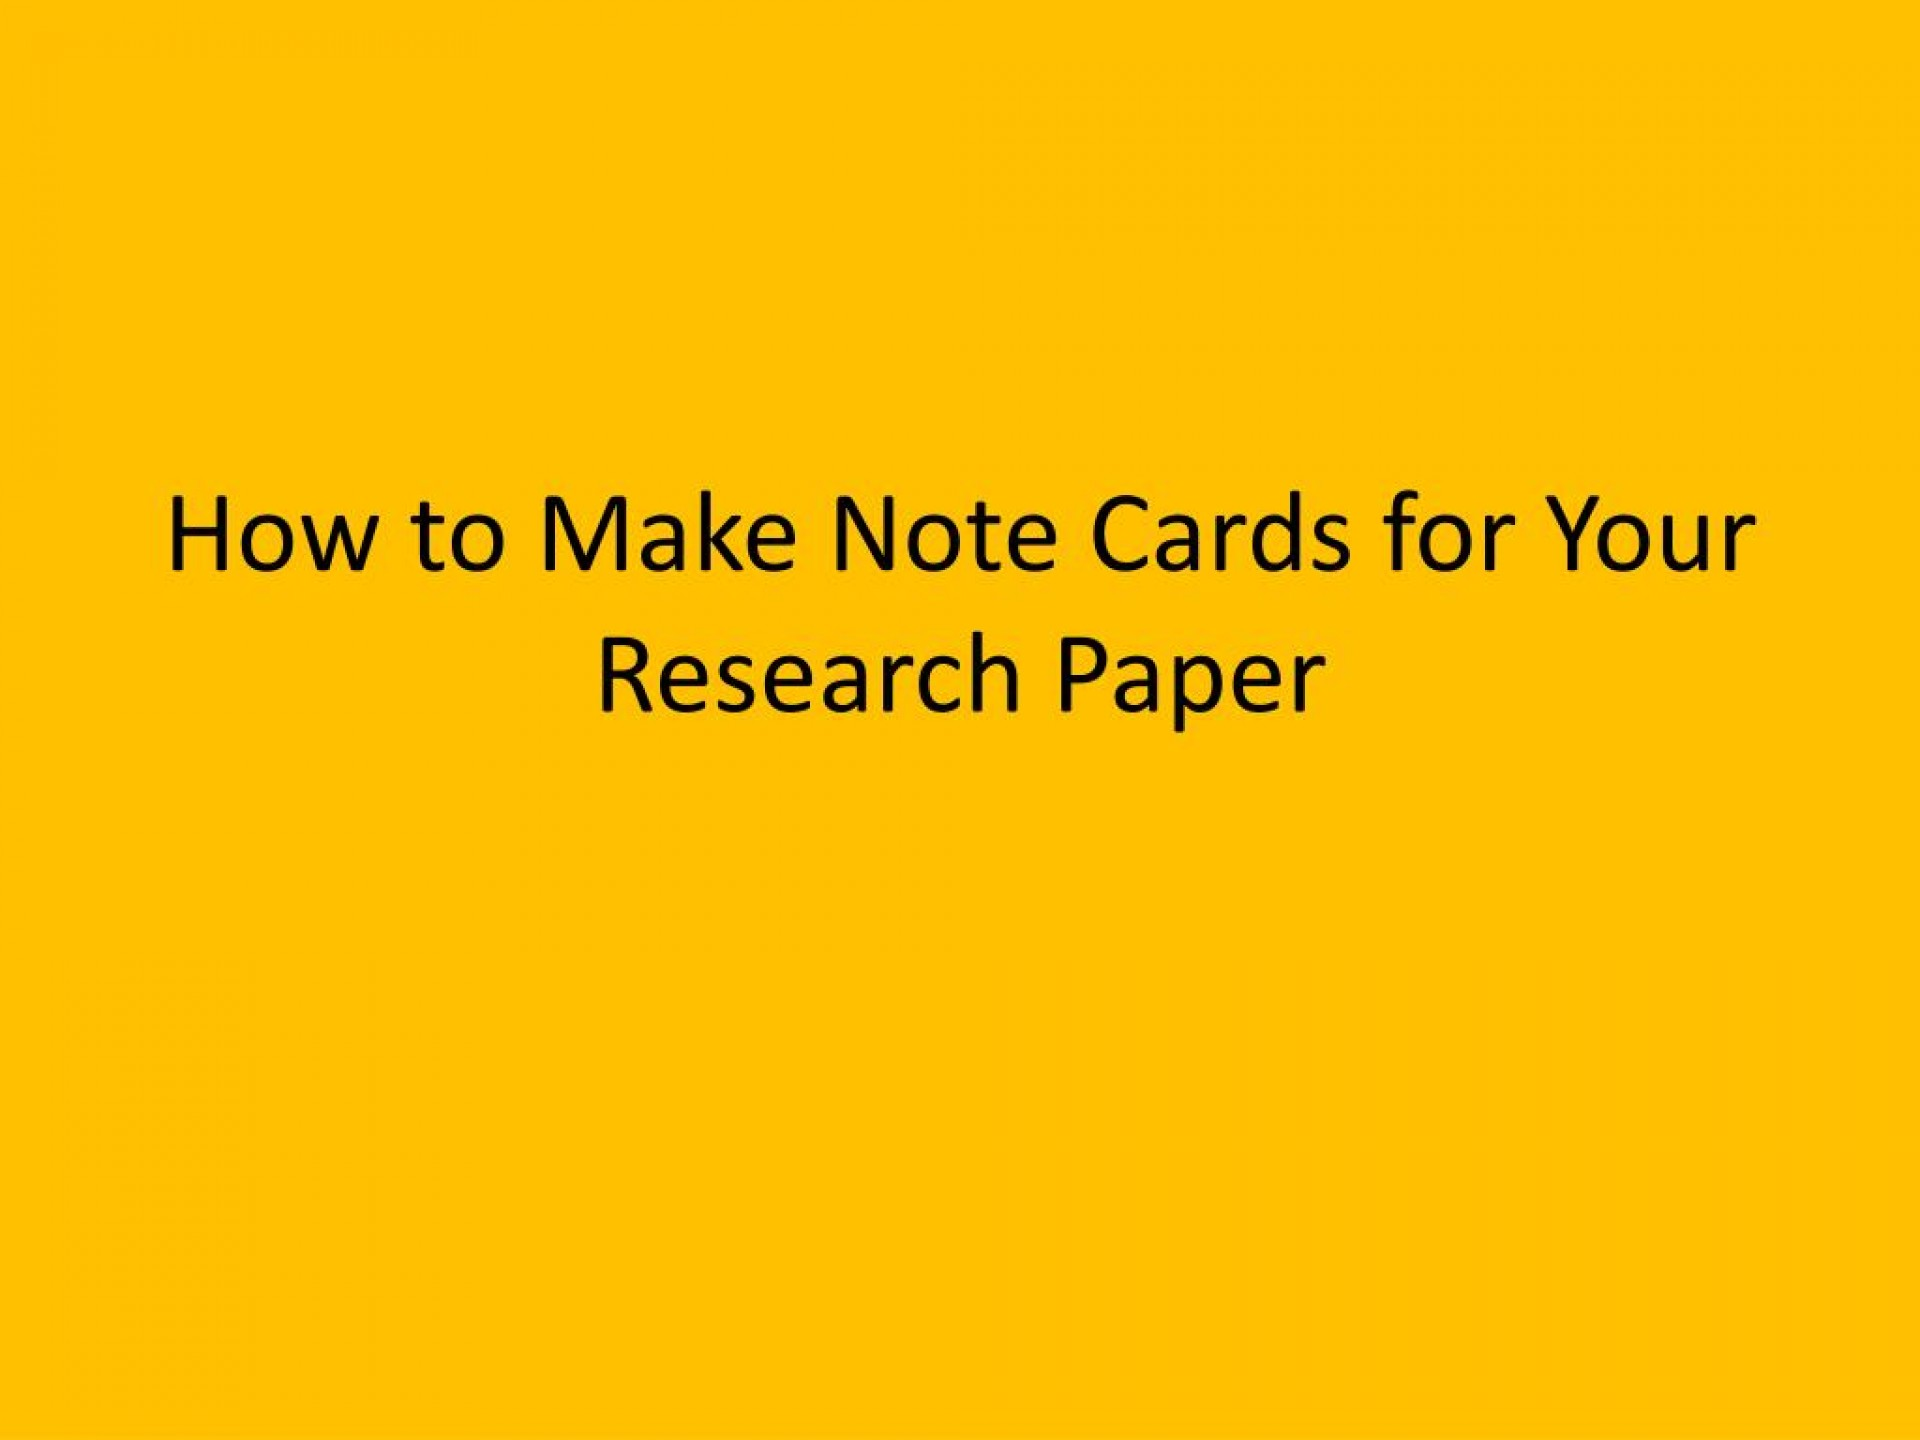 016 Note Cards Research Paper How To Make For Your Wonderful Apa Format Examples A Card 1920